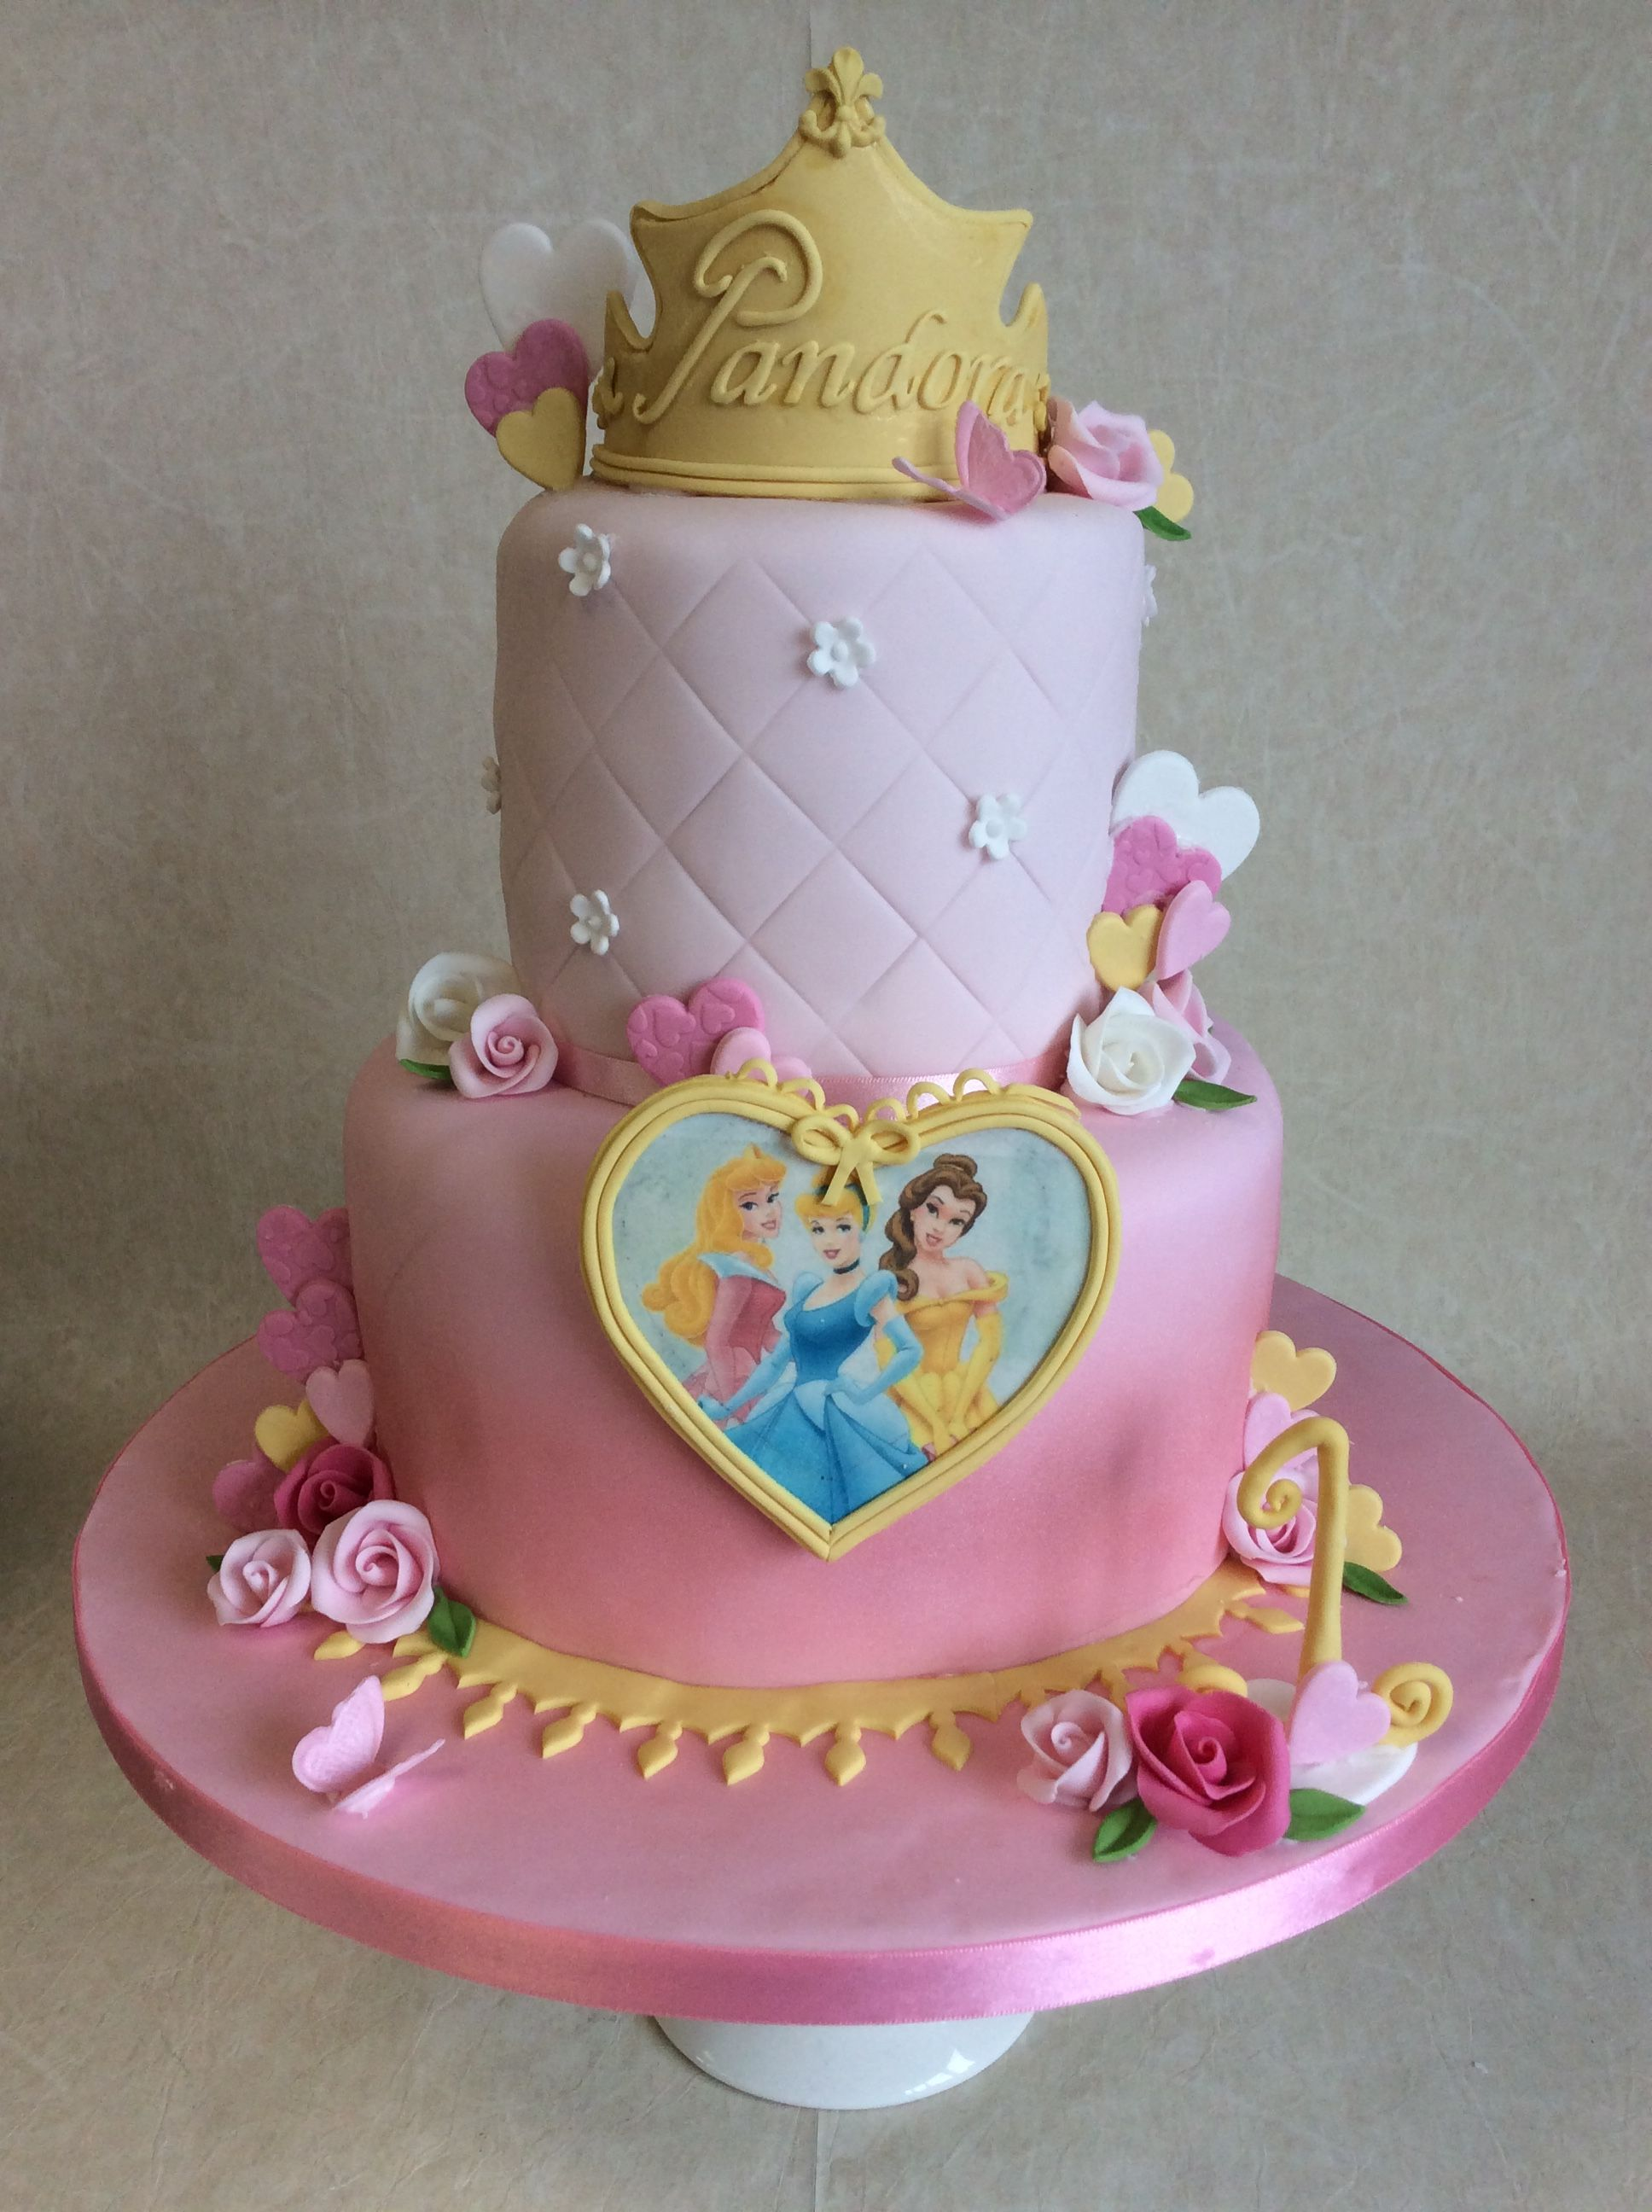 2 Tier Disney Princess Theme 1st Birthday Cake